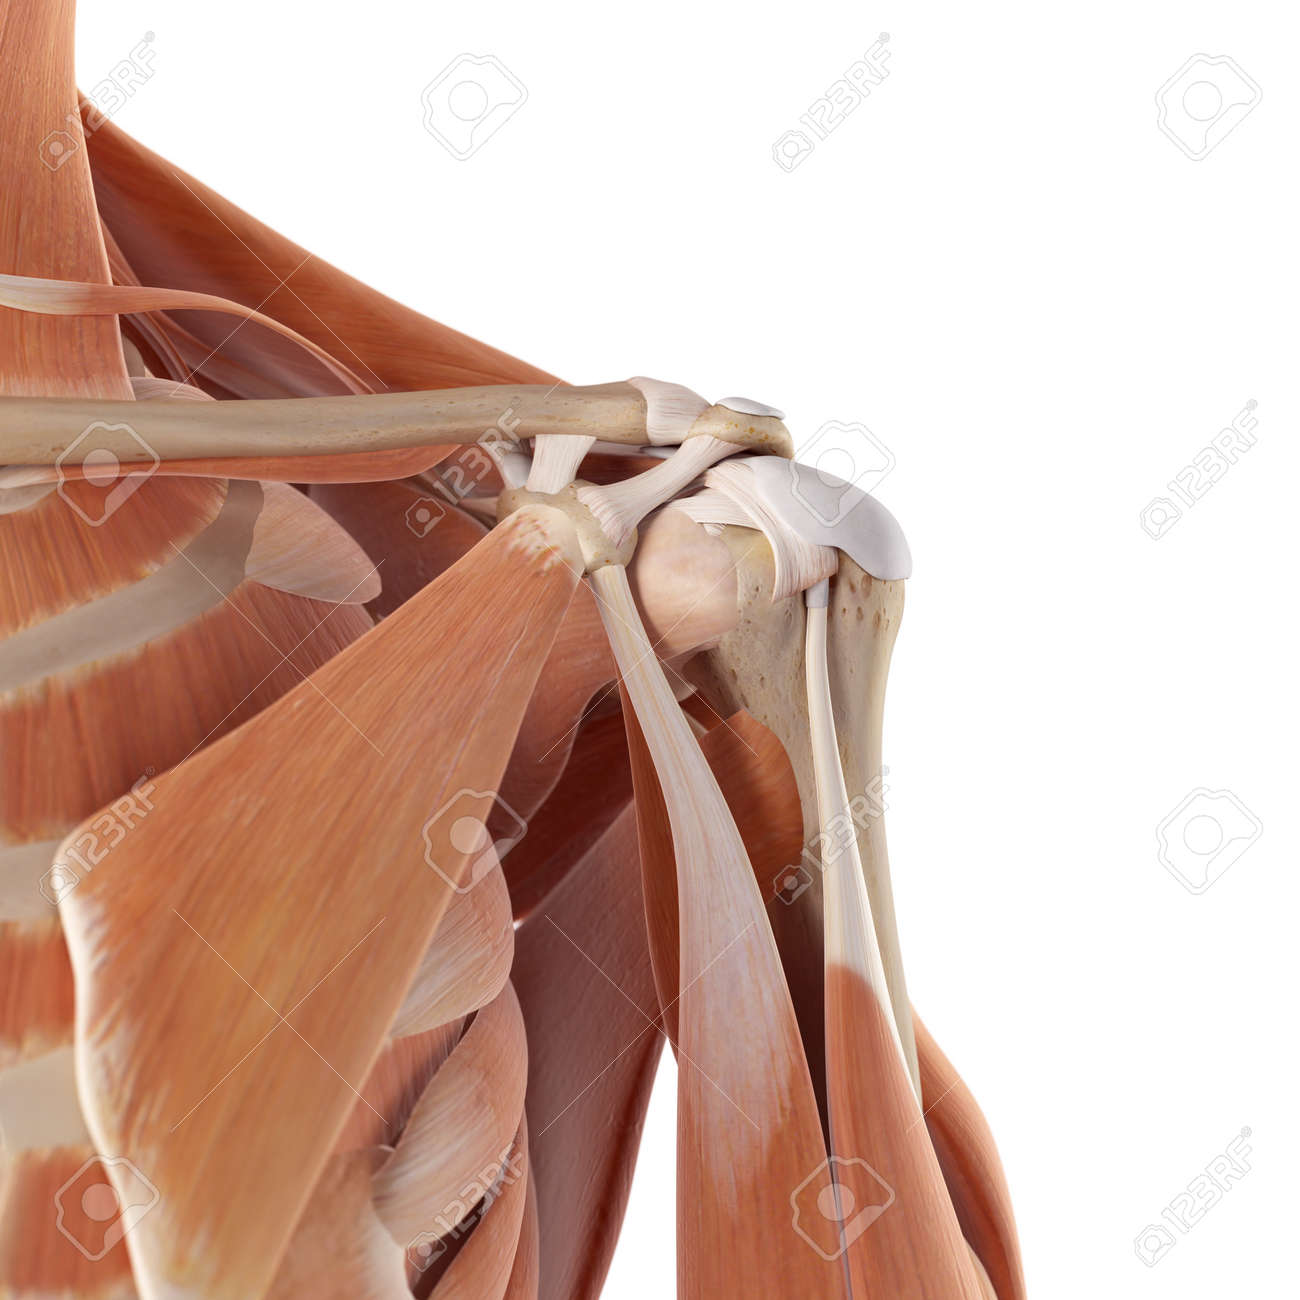 medical accurate illustration of the shoulder muscles - 42219199